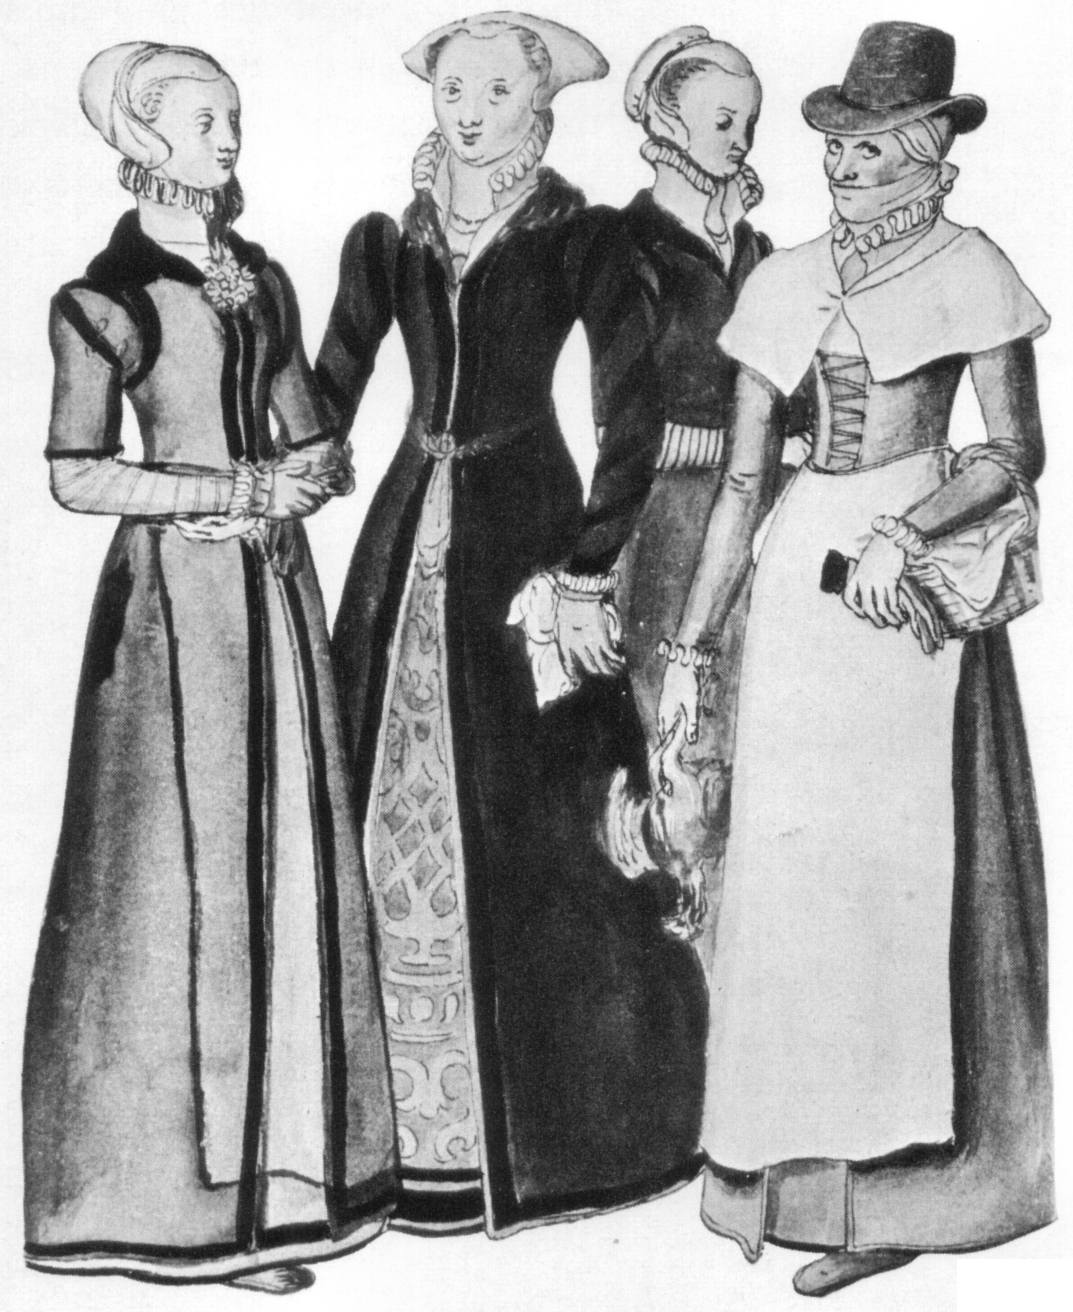 elizabethan era women In addition, there is a bewildering variety in english elizabethan womenswear just like today, not all women dressed in identical outfits what a woman wore depended on her age (older women preferred more traditional styles), background (rural noblewomen weren't privy to the latest london fashions), body type (some.